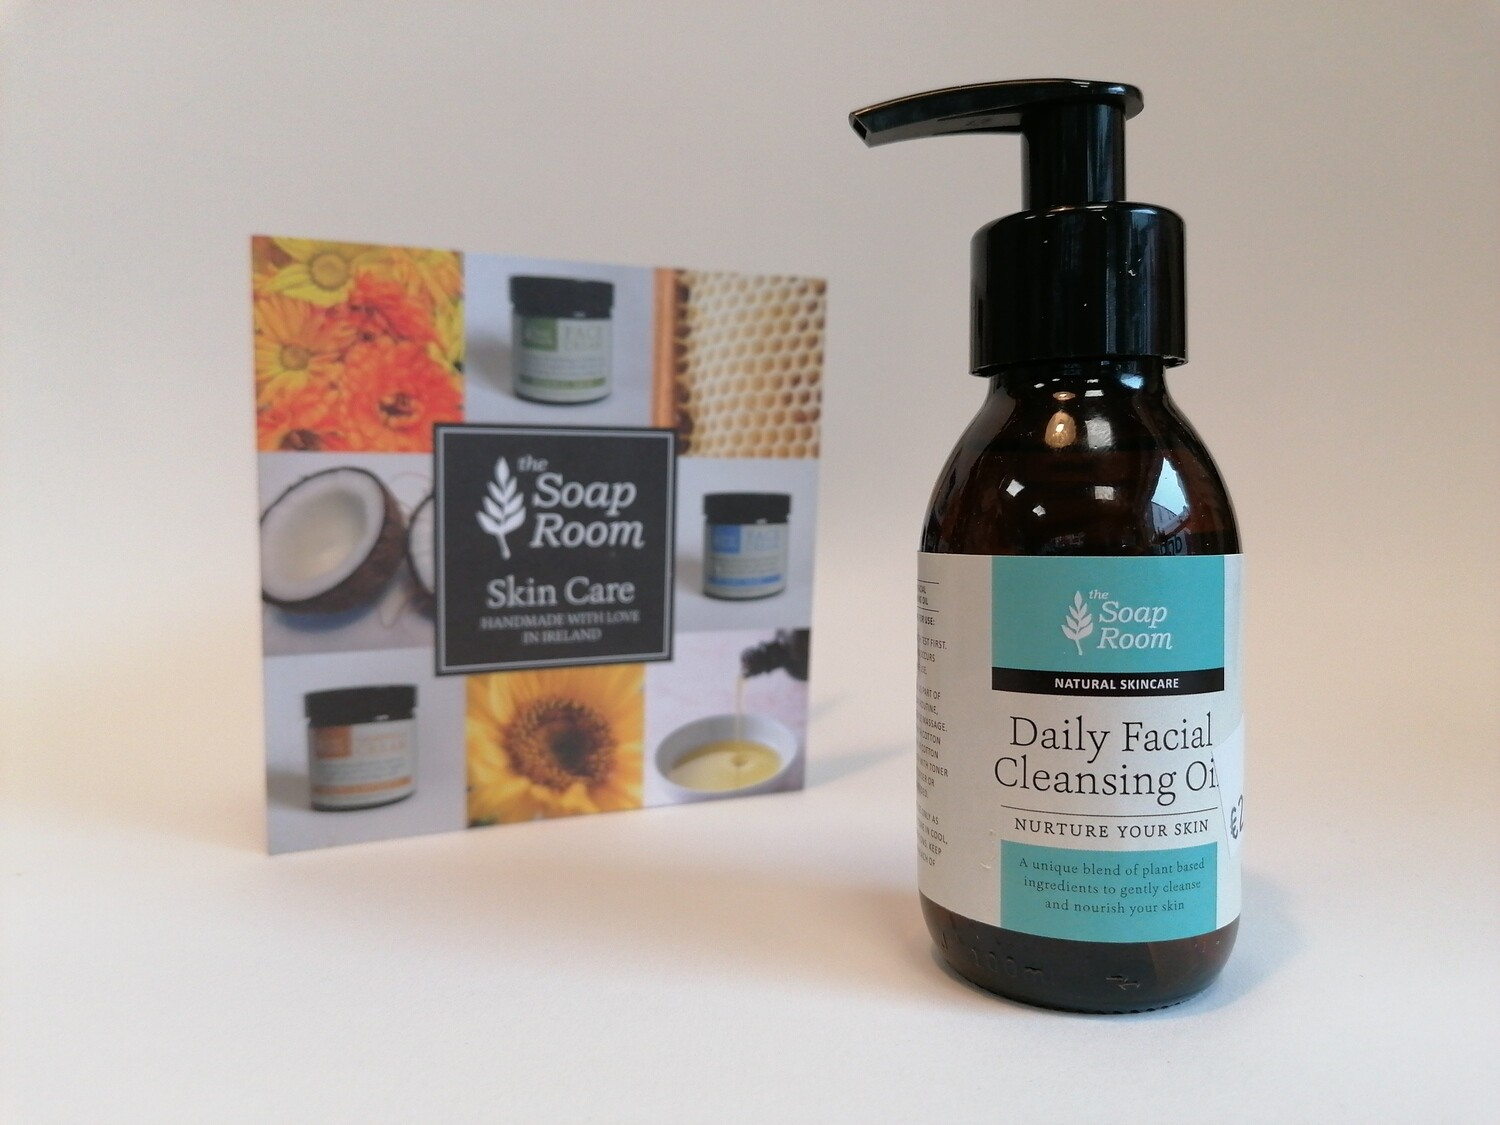 The Soap Room Daily Facial Cleansing Oil